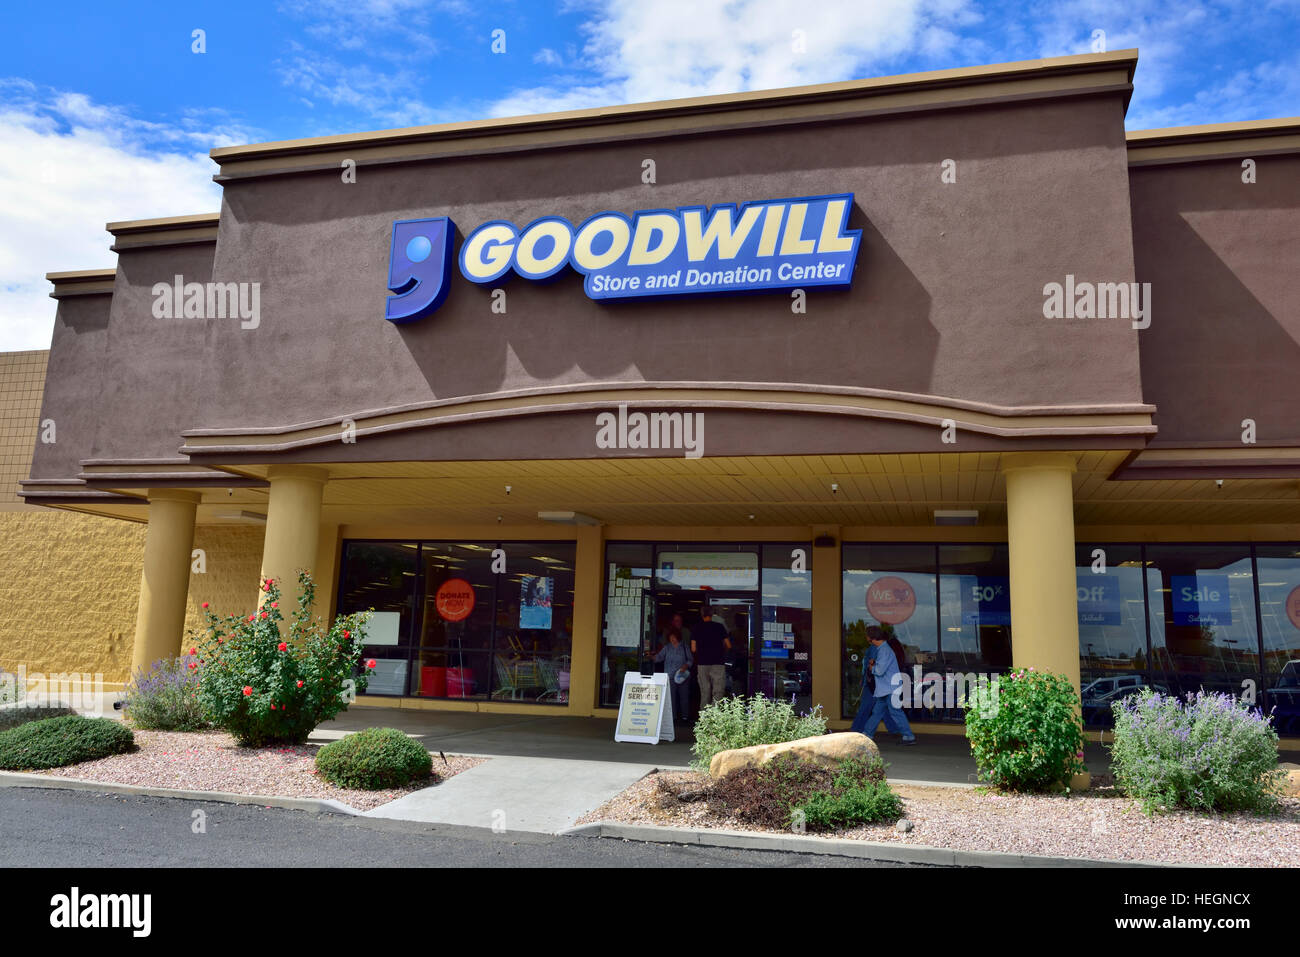 Goodwill store and donation centre, USA - Stock Image